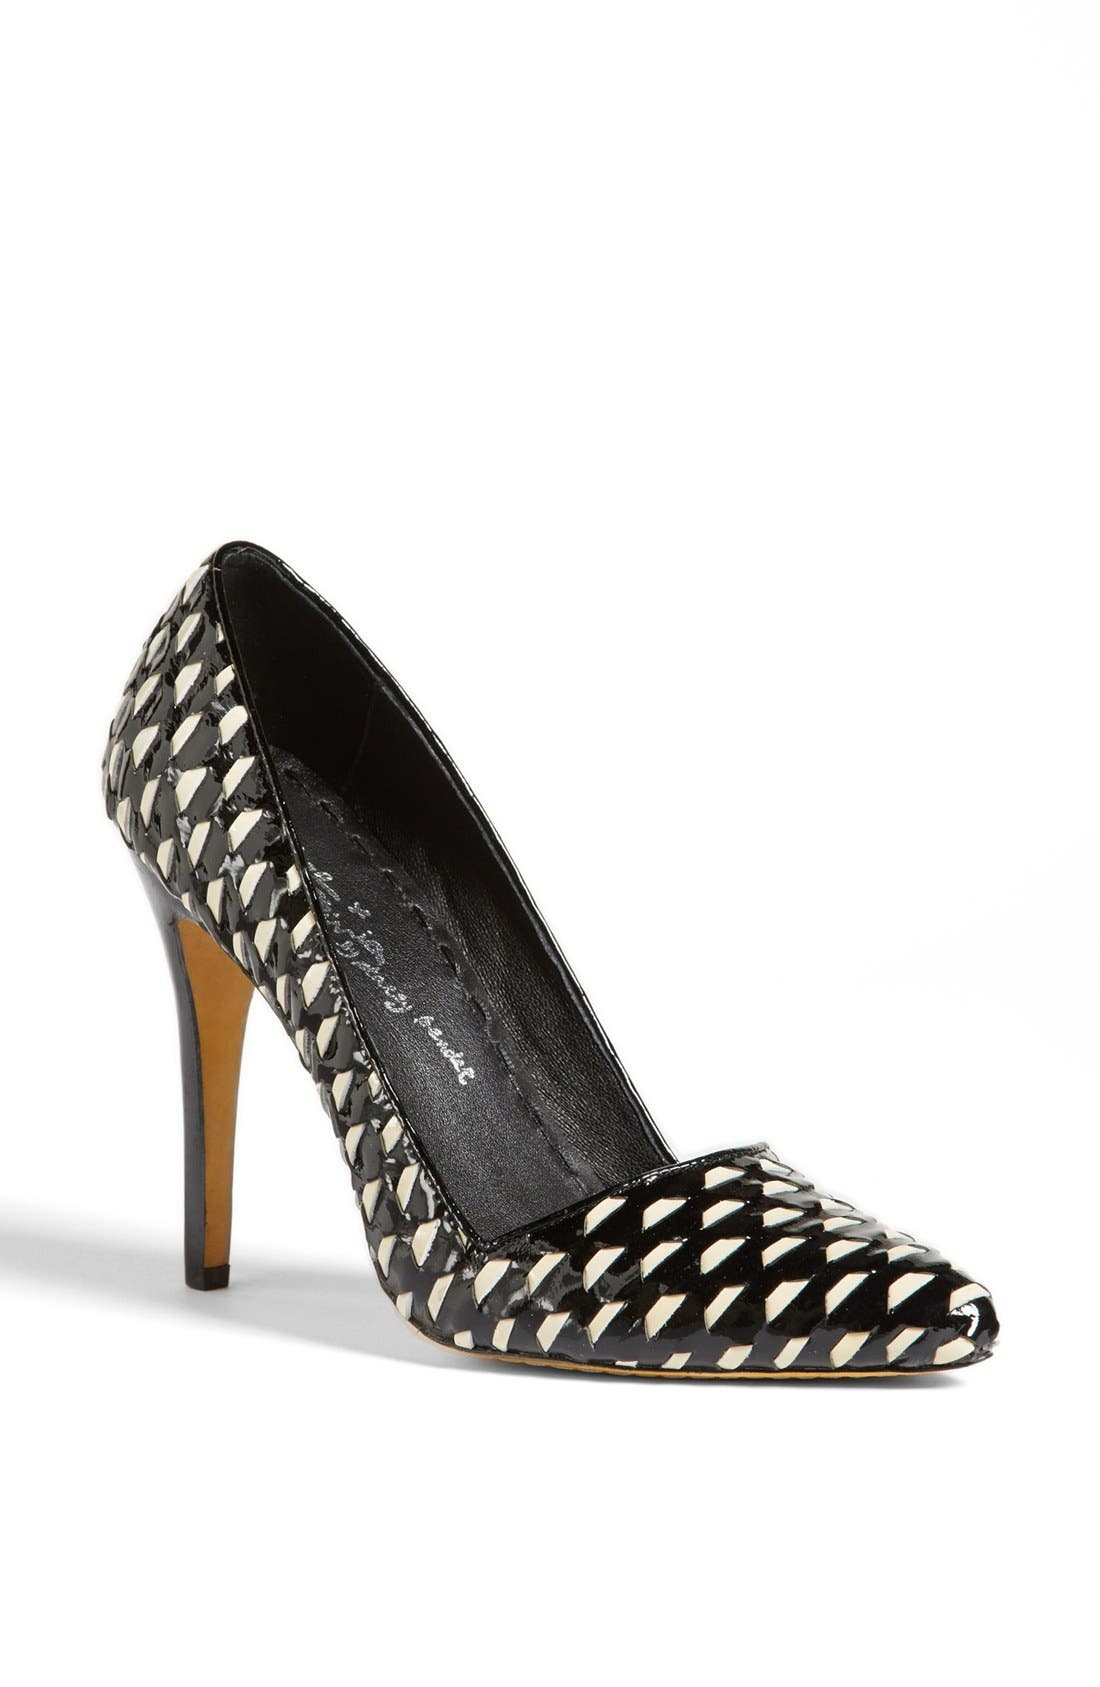 Alternate Image 1 Selected - Alice + Olivia 'Dina' Pump (Online Only)